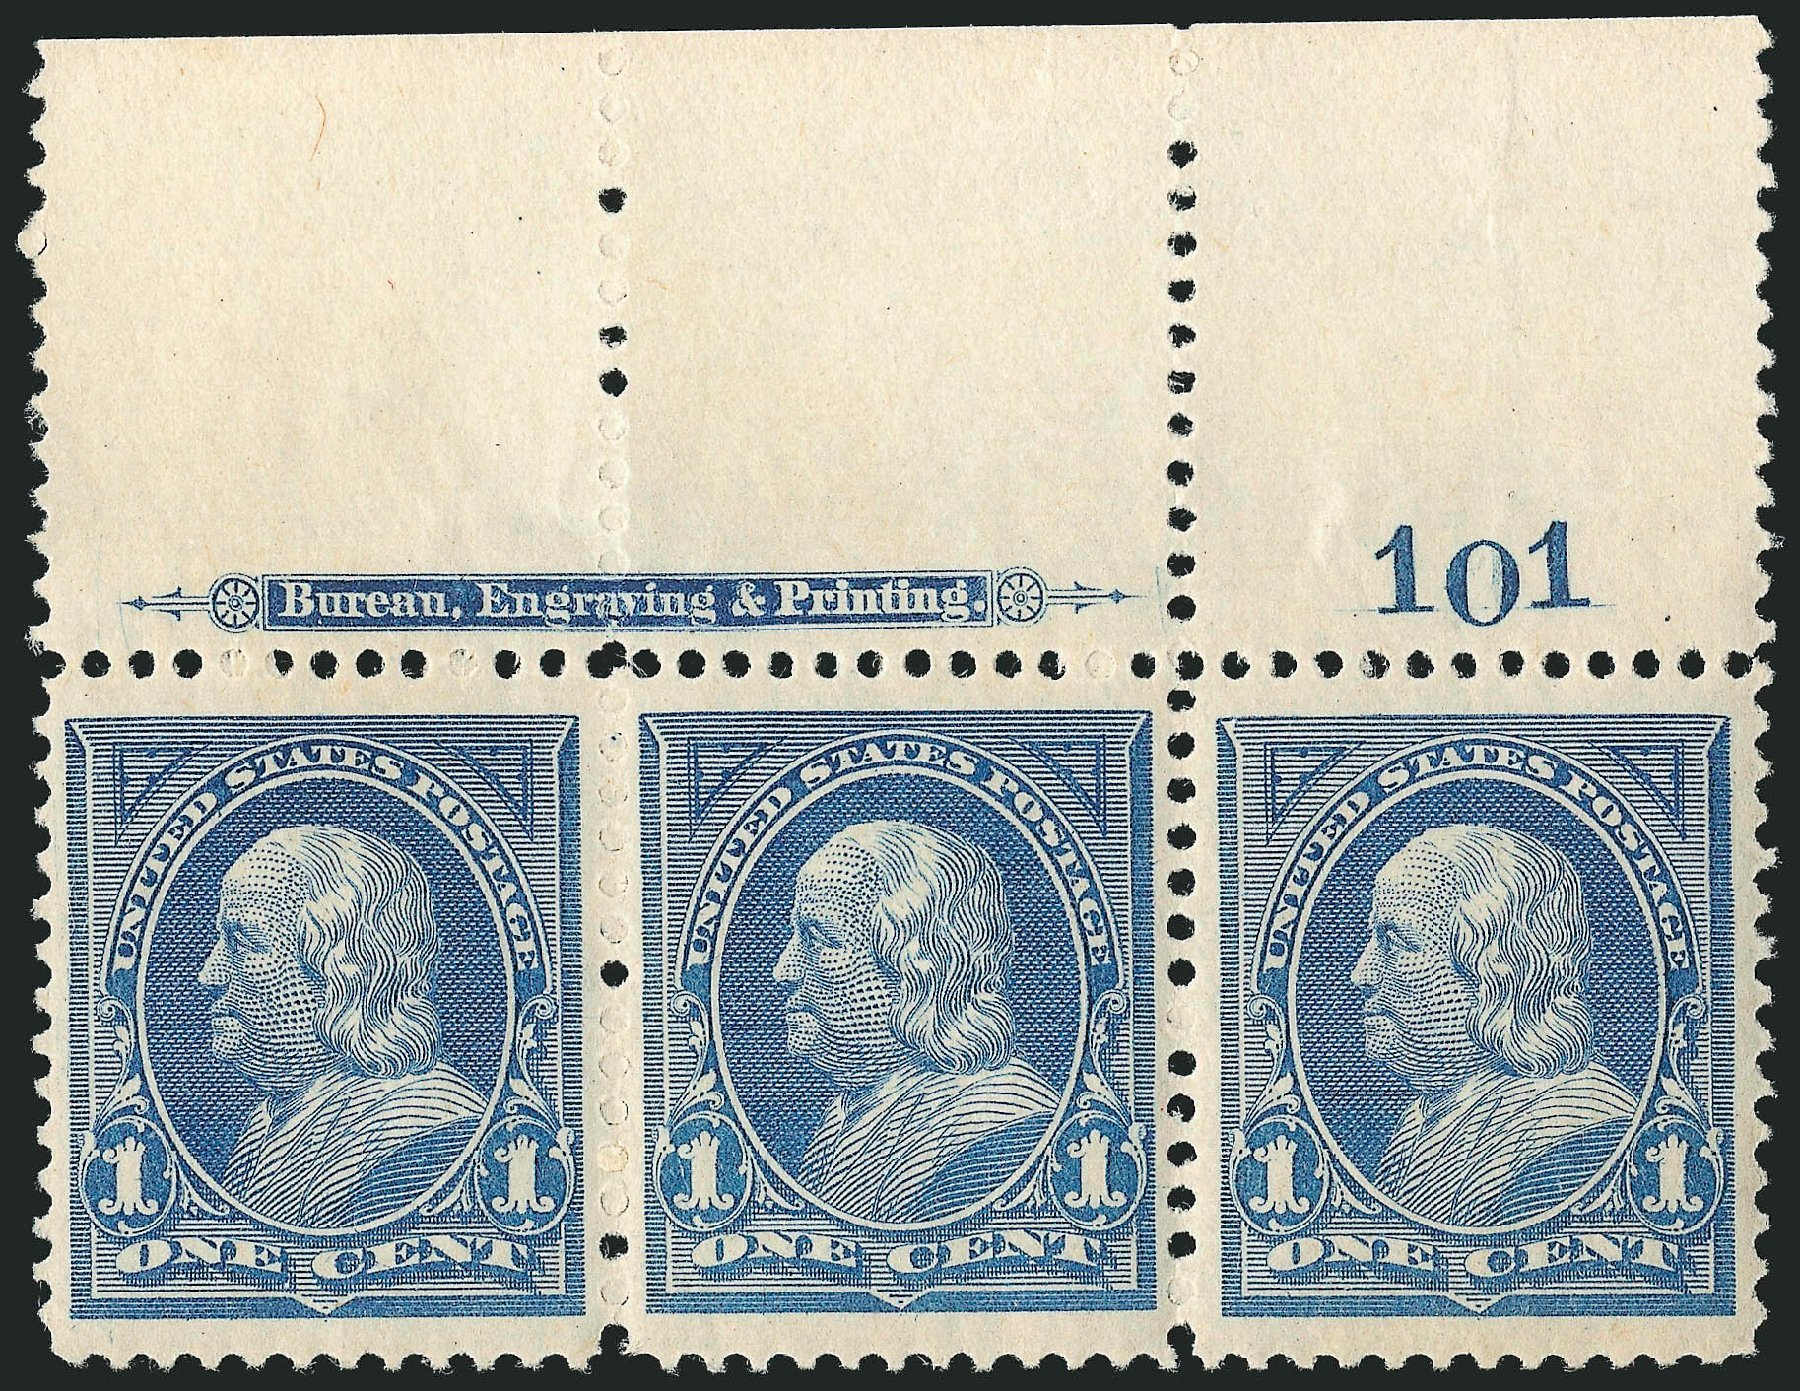 Costs of US Stamp Scott Cat. 247 - 1894 1c Franklin. Robert Siegel Auction Galleries, Mar 2014, Sale 1067, Lot 1248